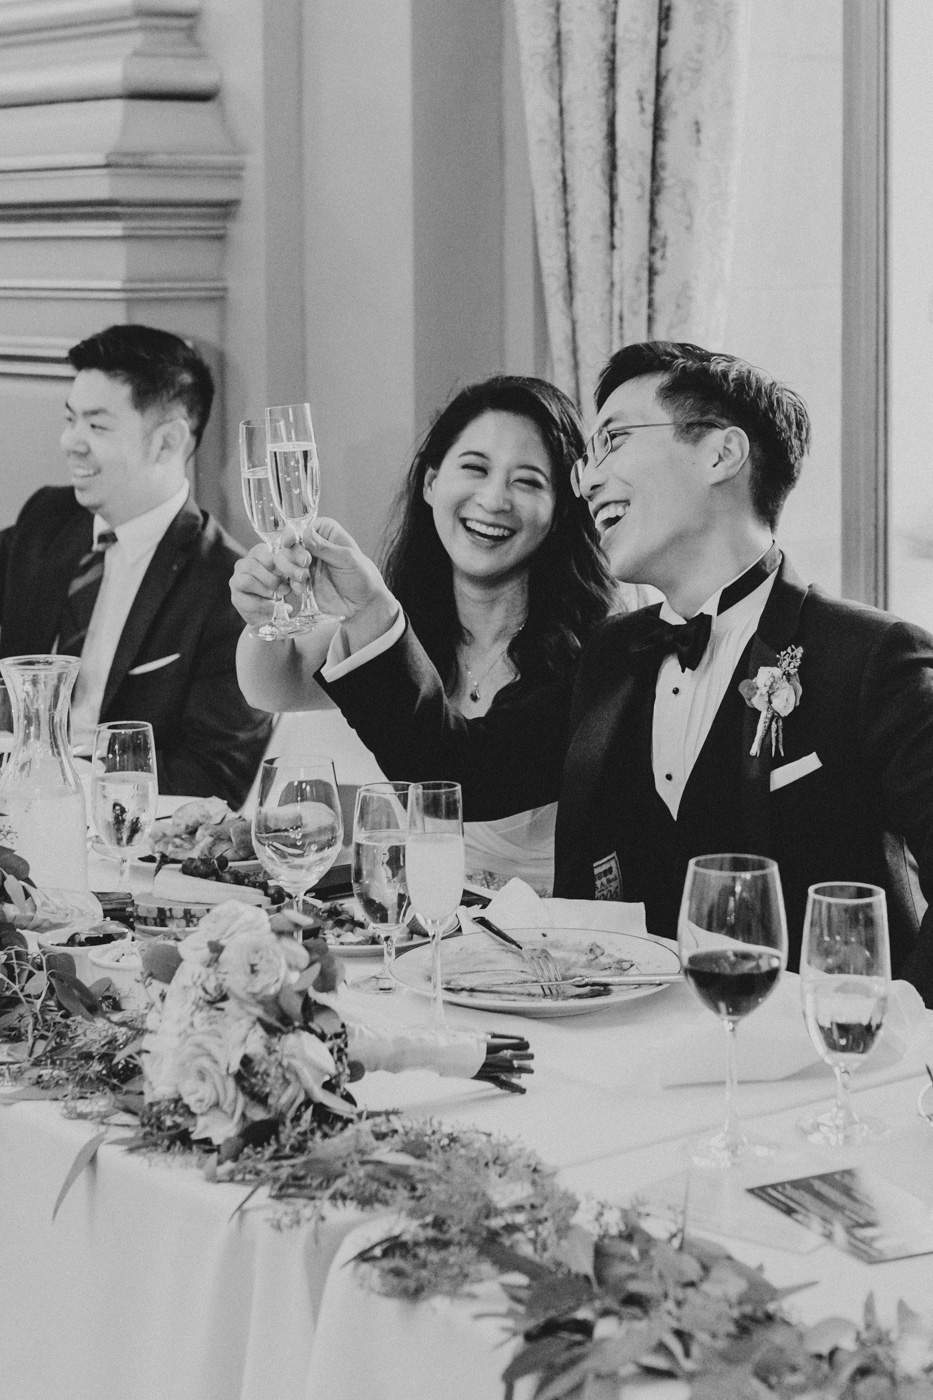 bride-and-groom-laughing-black-and-white